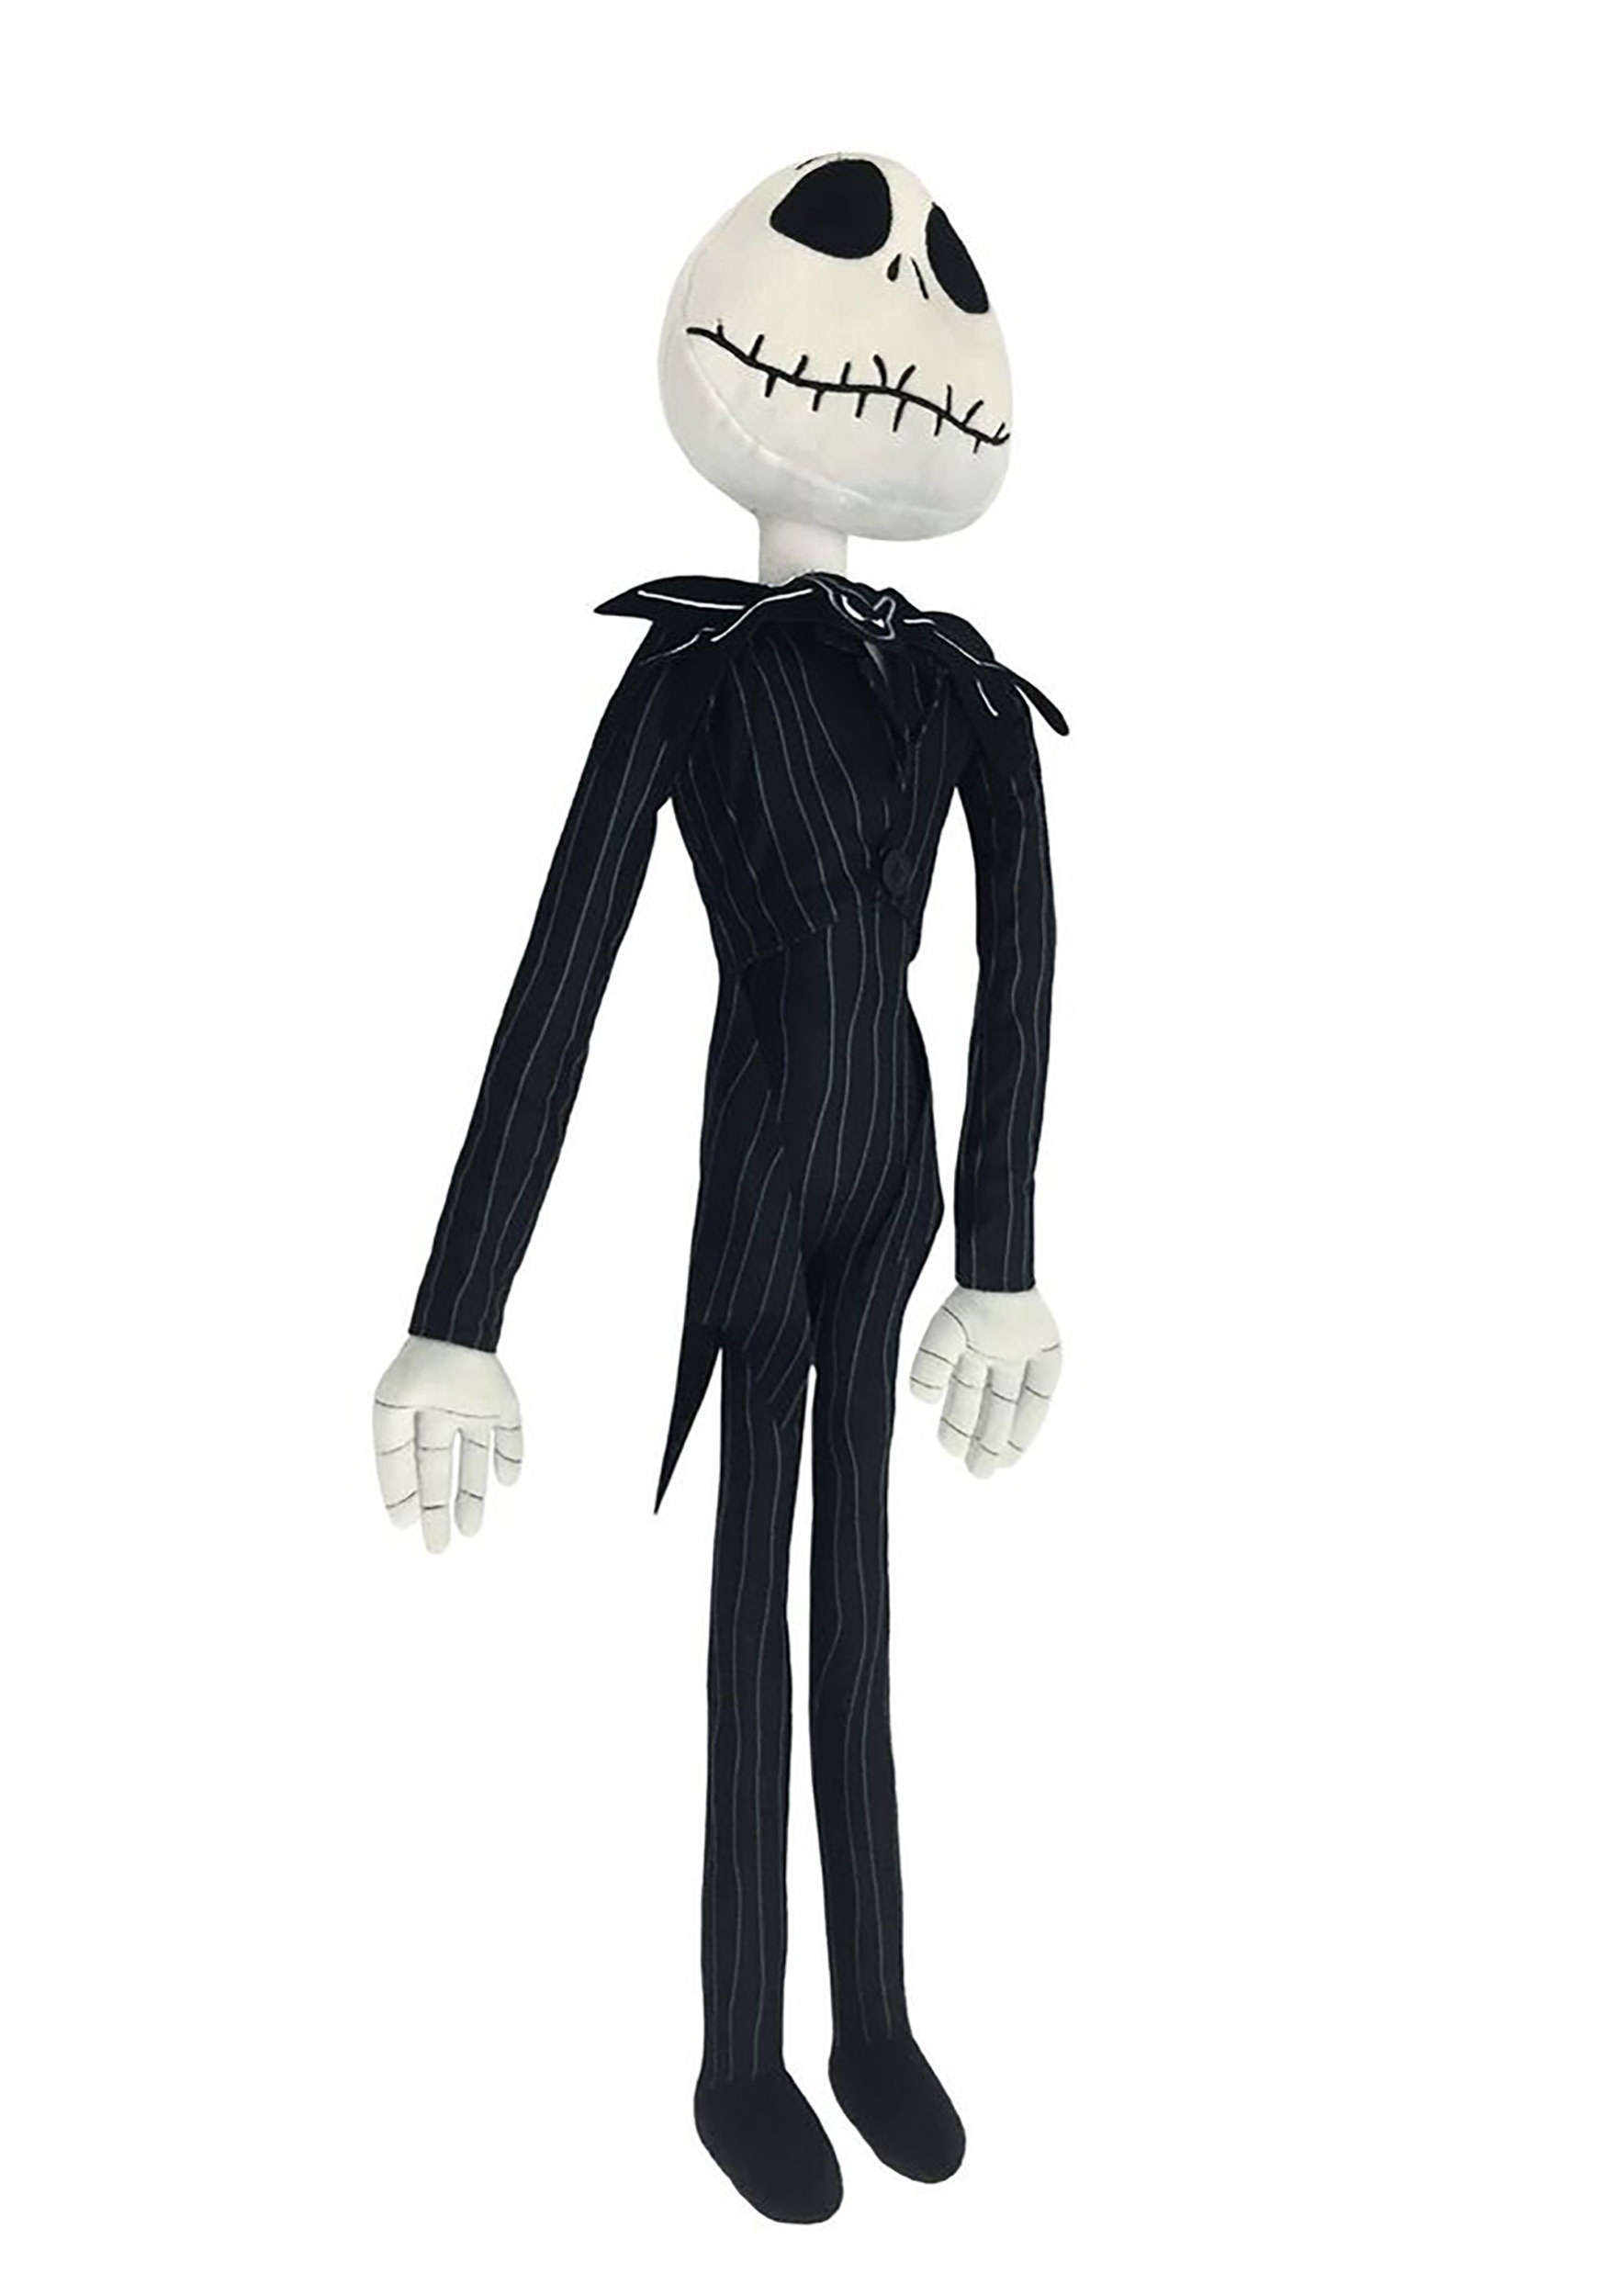 Jack Skellington Nightmare Before Christmas Stuffed Dolled